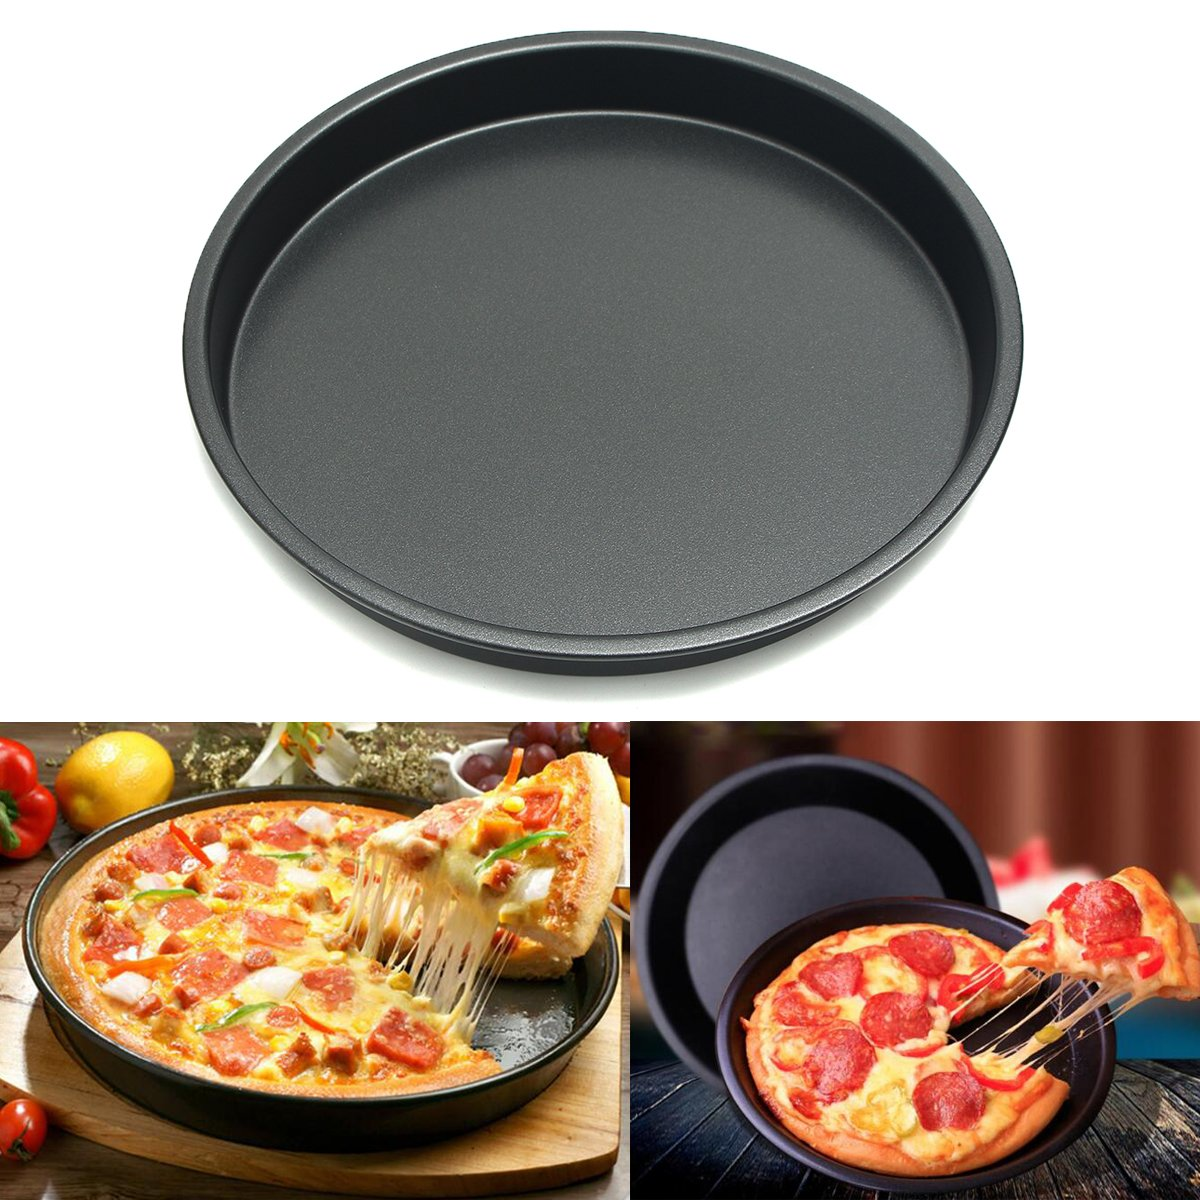 Janolia Pizza Pan, Non-stick Coating Steel Air Fryer Accessory Fit For Air Fryer, Microwave or Oven quantity